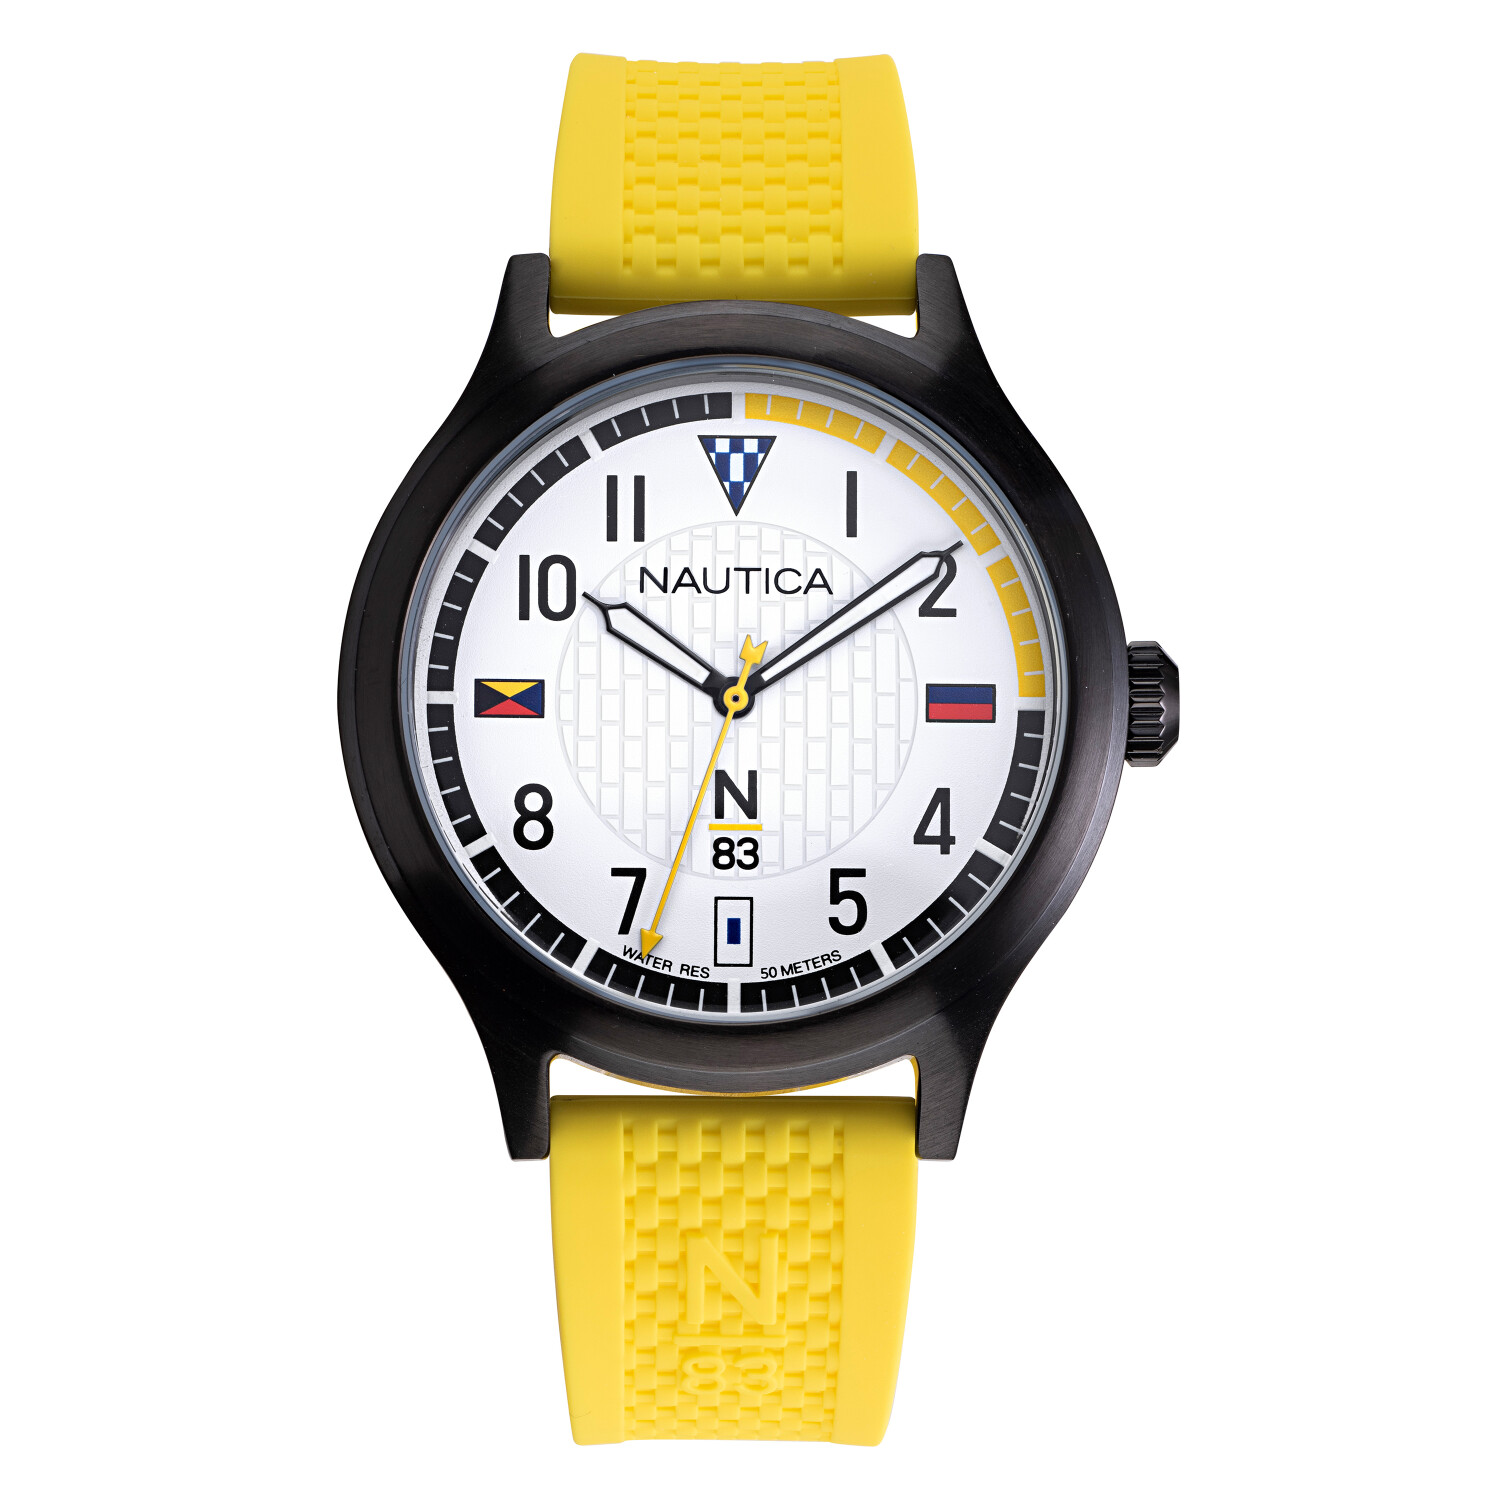 Nautica Men's Crissy Field NAPCFS902 Yellow Silicone Quartz Fashion Watch